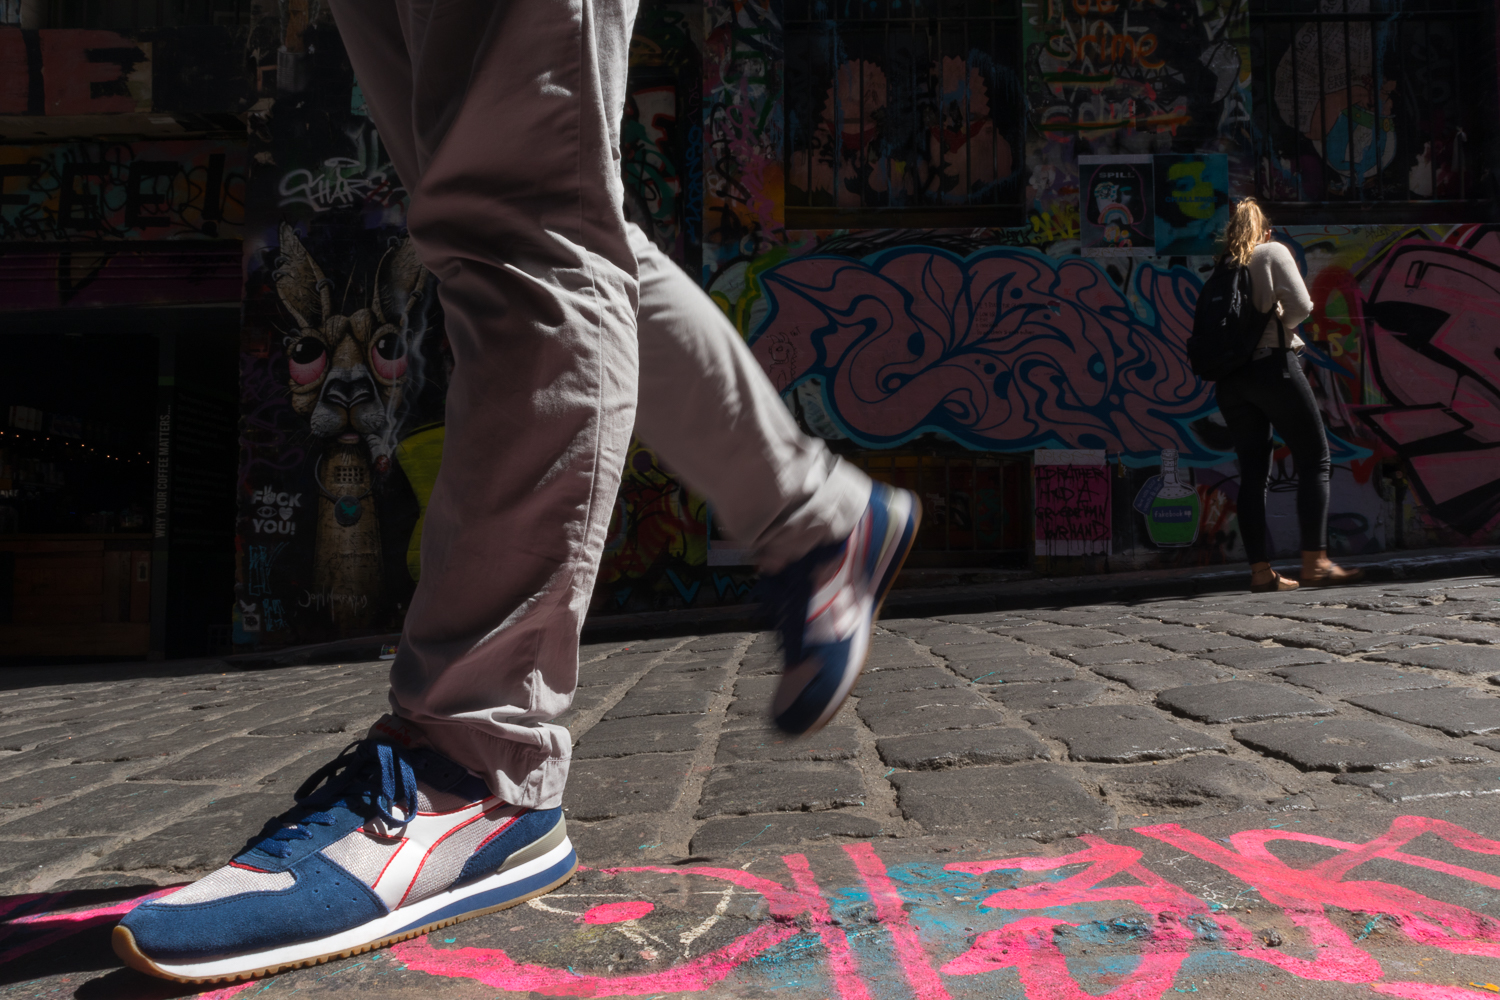 Andrew posing with Diadora sneakers in Melbourne's graffiti lane, Melbourne Australia